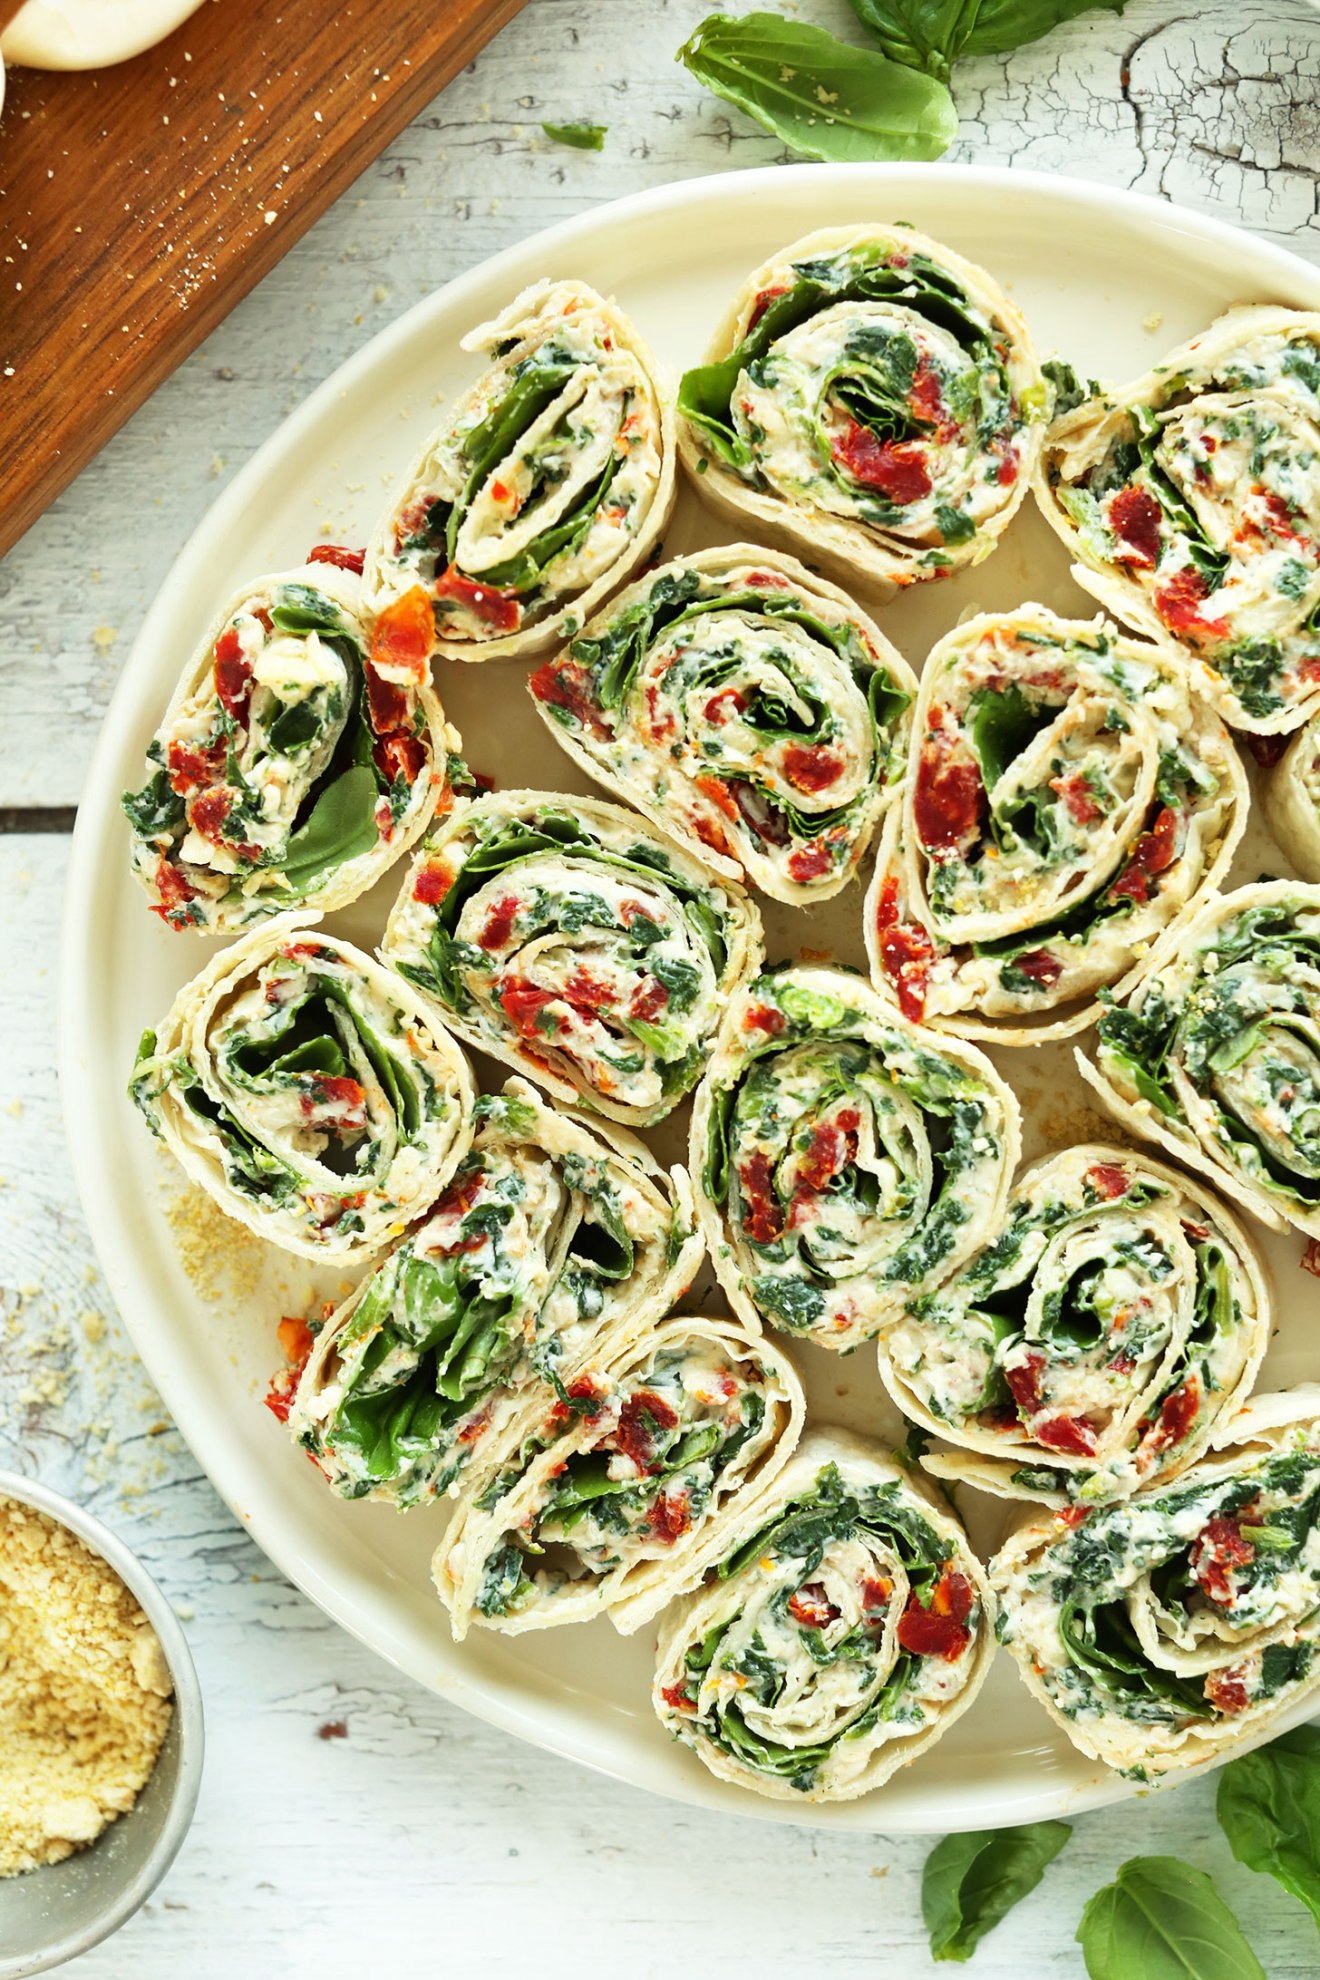 8-ingredient-15-minute-Sun-dried-Tomato-and-Basil-Pinwheels-An-easy-crowd-pleasing-summer-friendly-appetizer-or-snack-vegan-recipe-appetizer